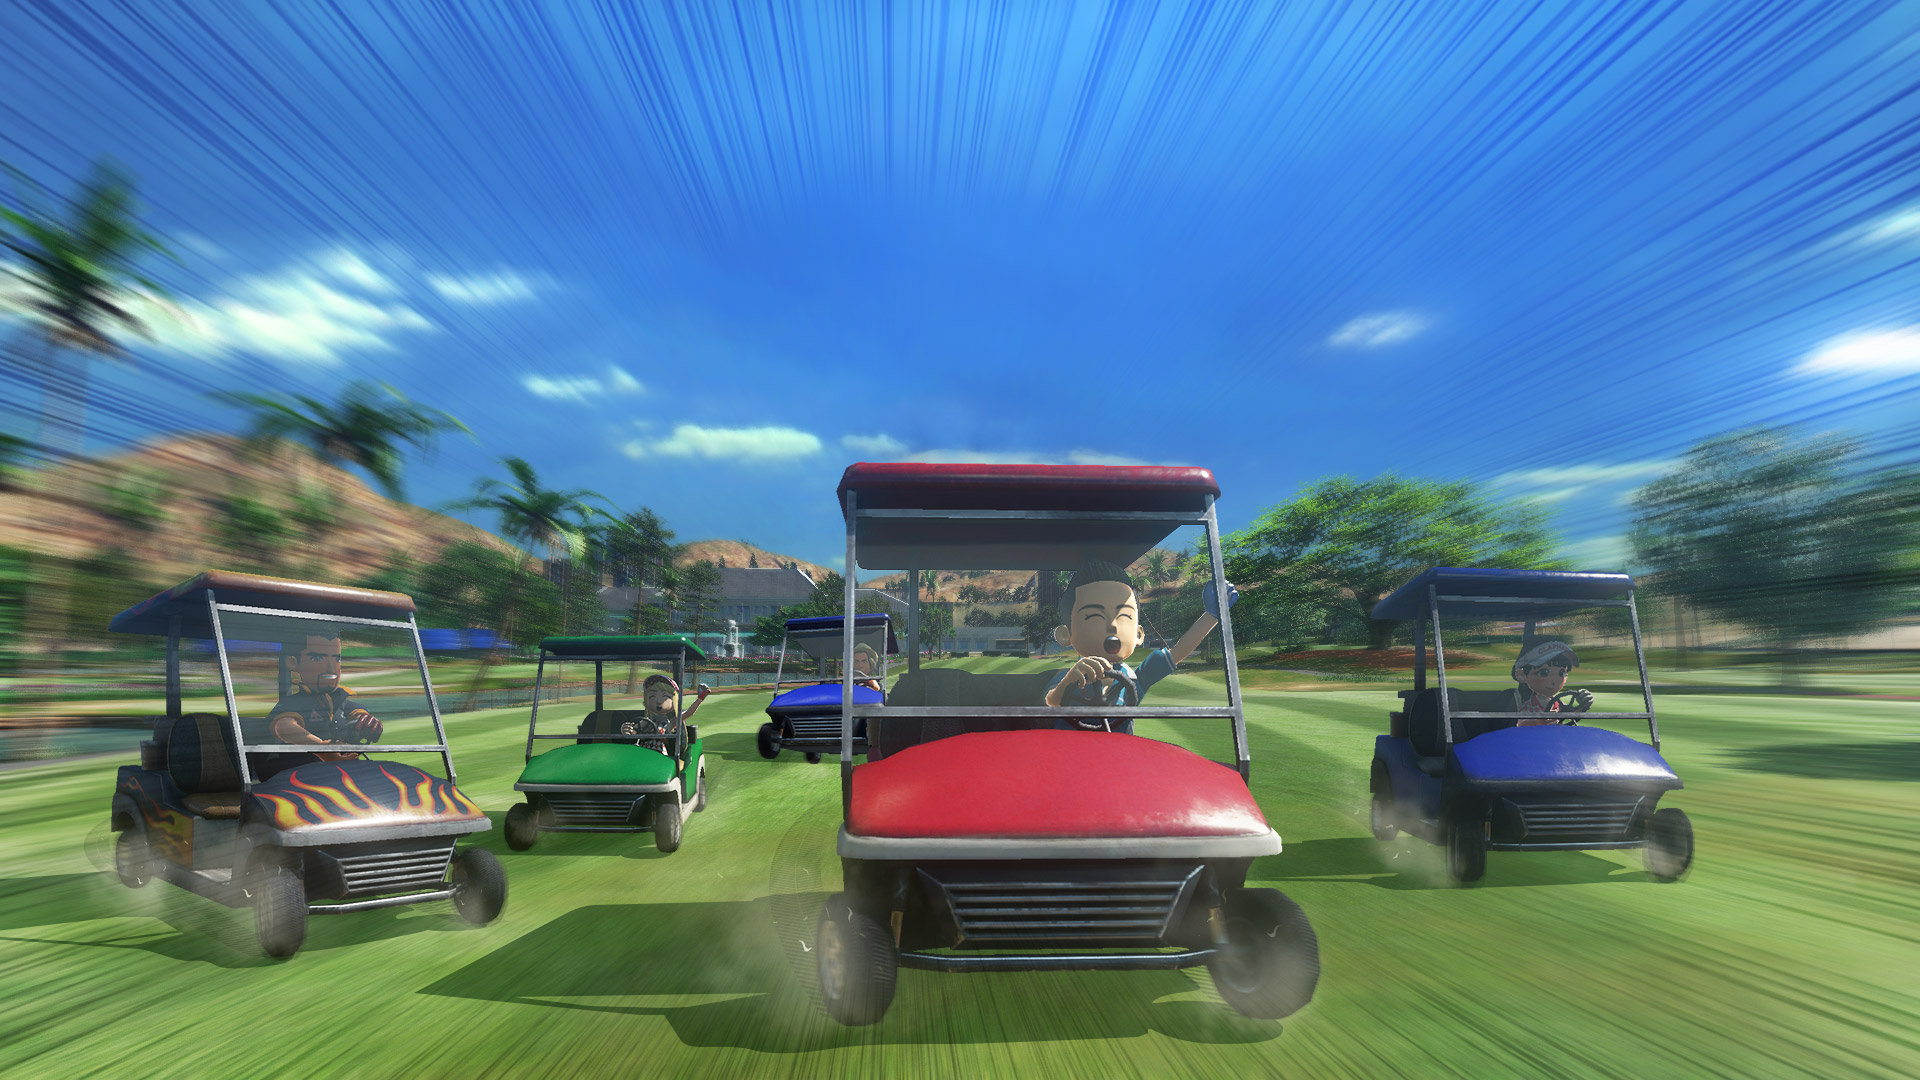 Everybody's Golf - recenze 154877